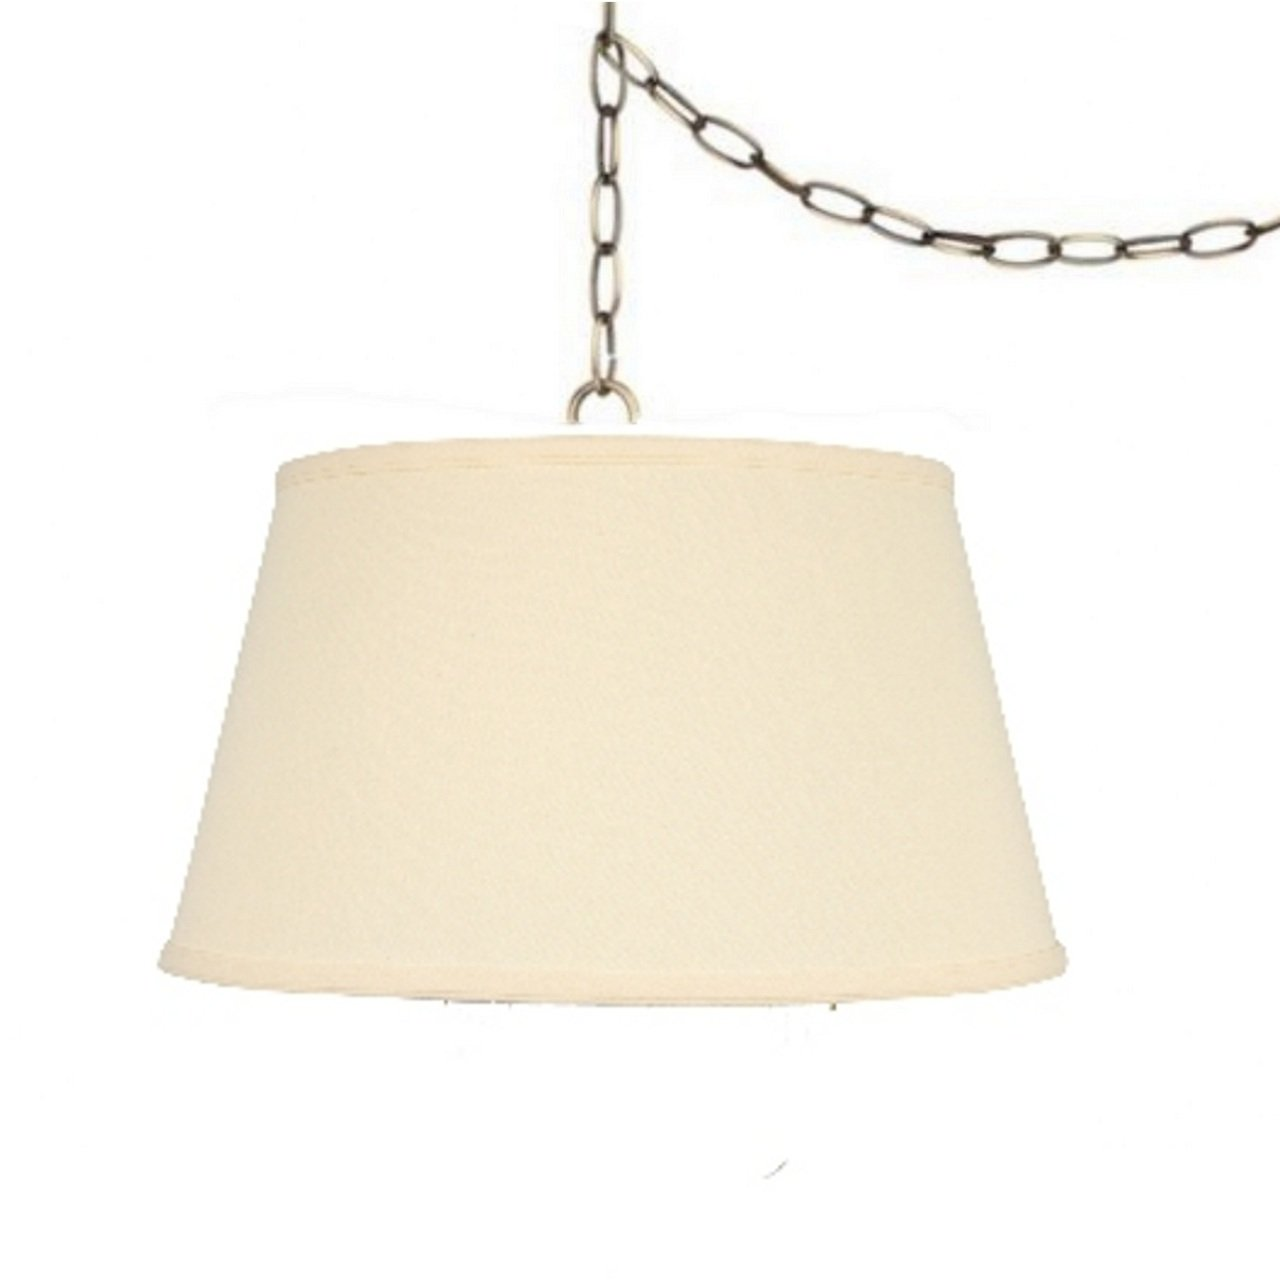 Upgradelights Beige Linen 19 Inch Swag Lamp Pendant with Antiqued ...